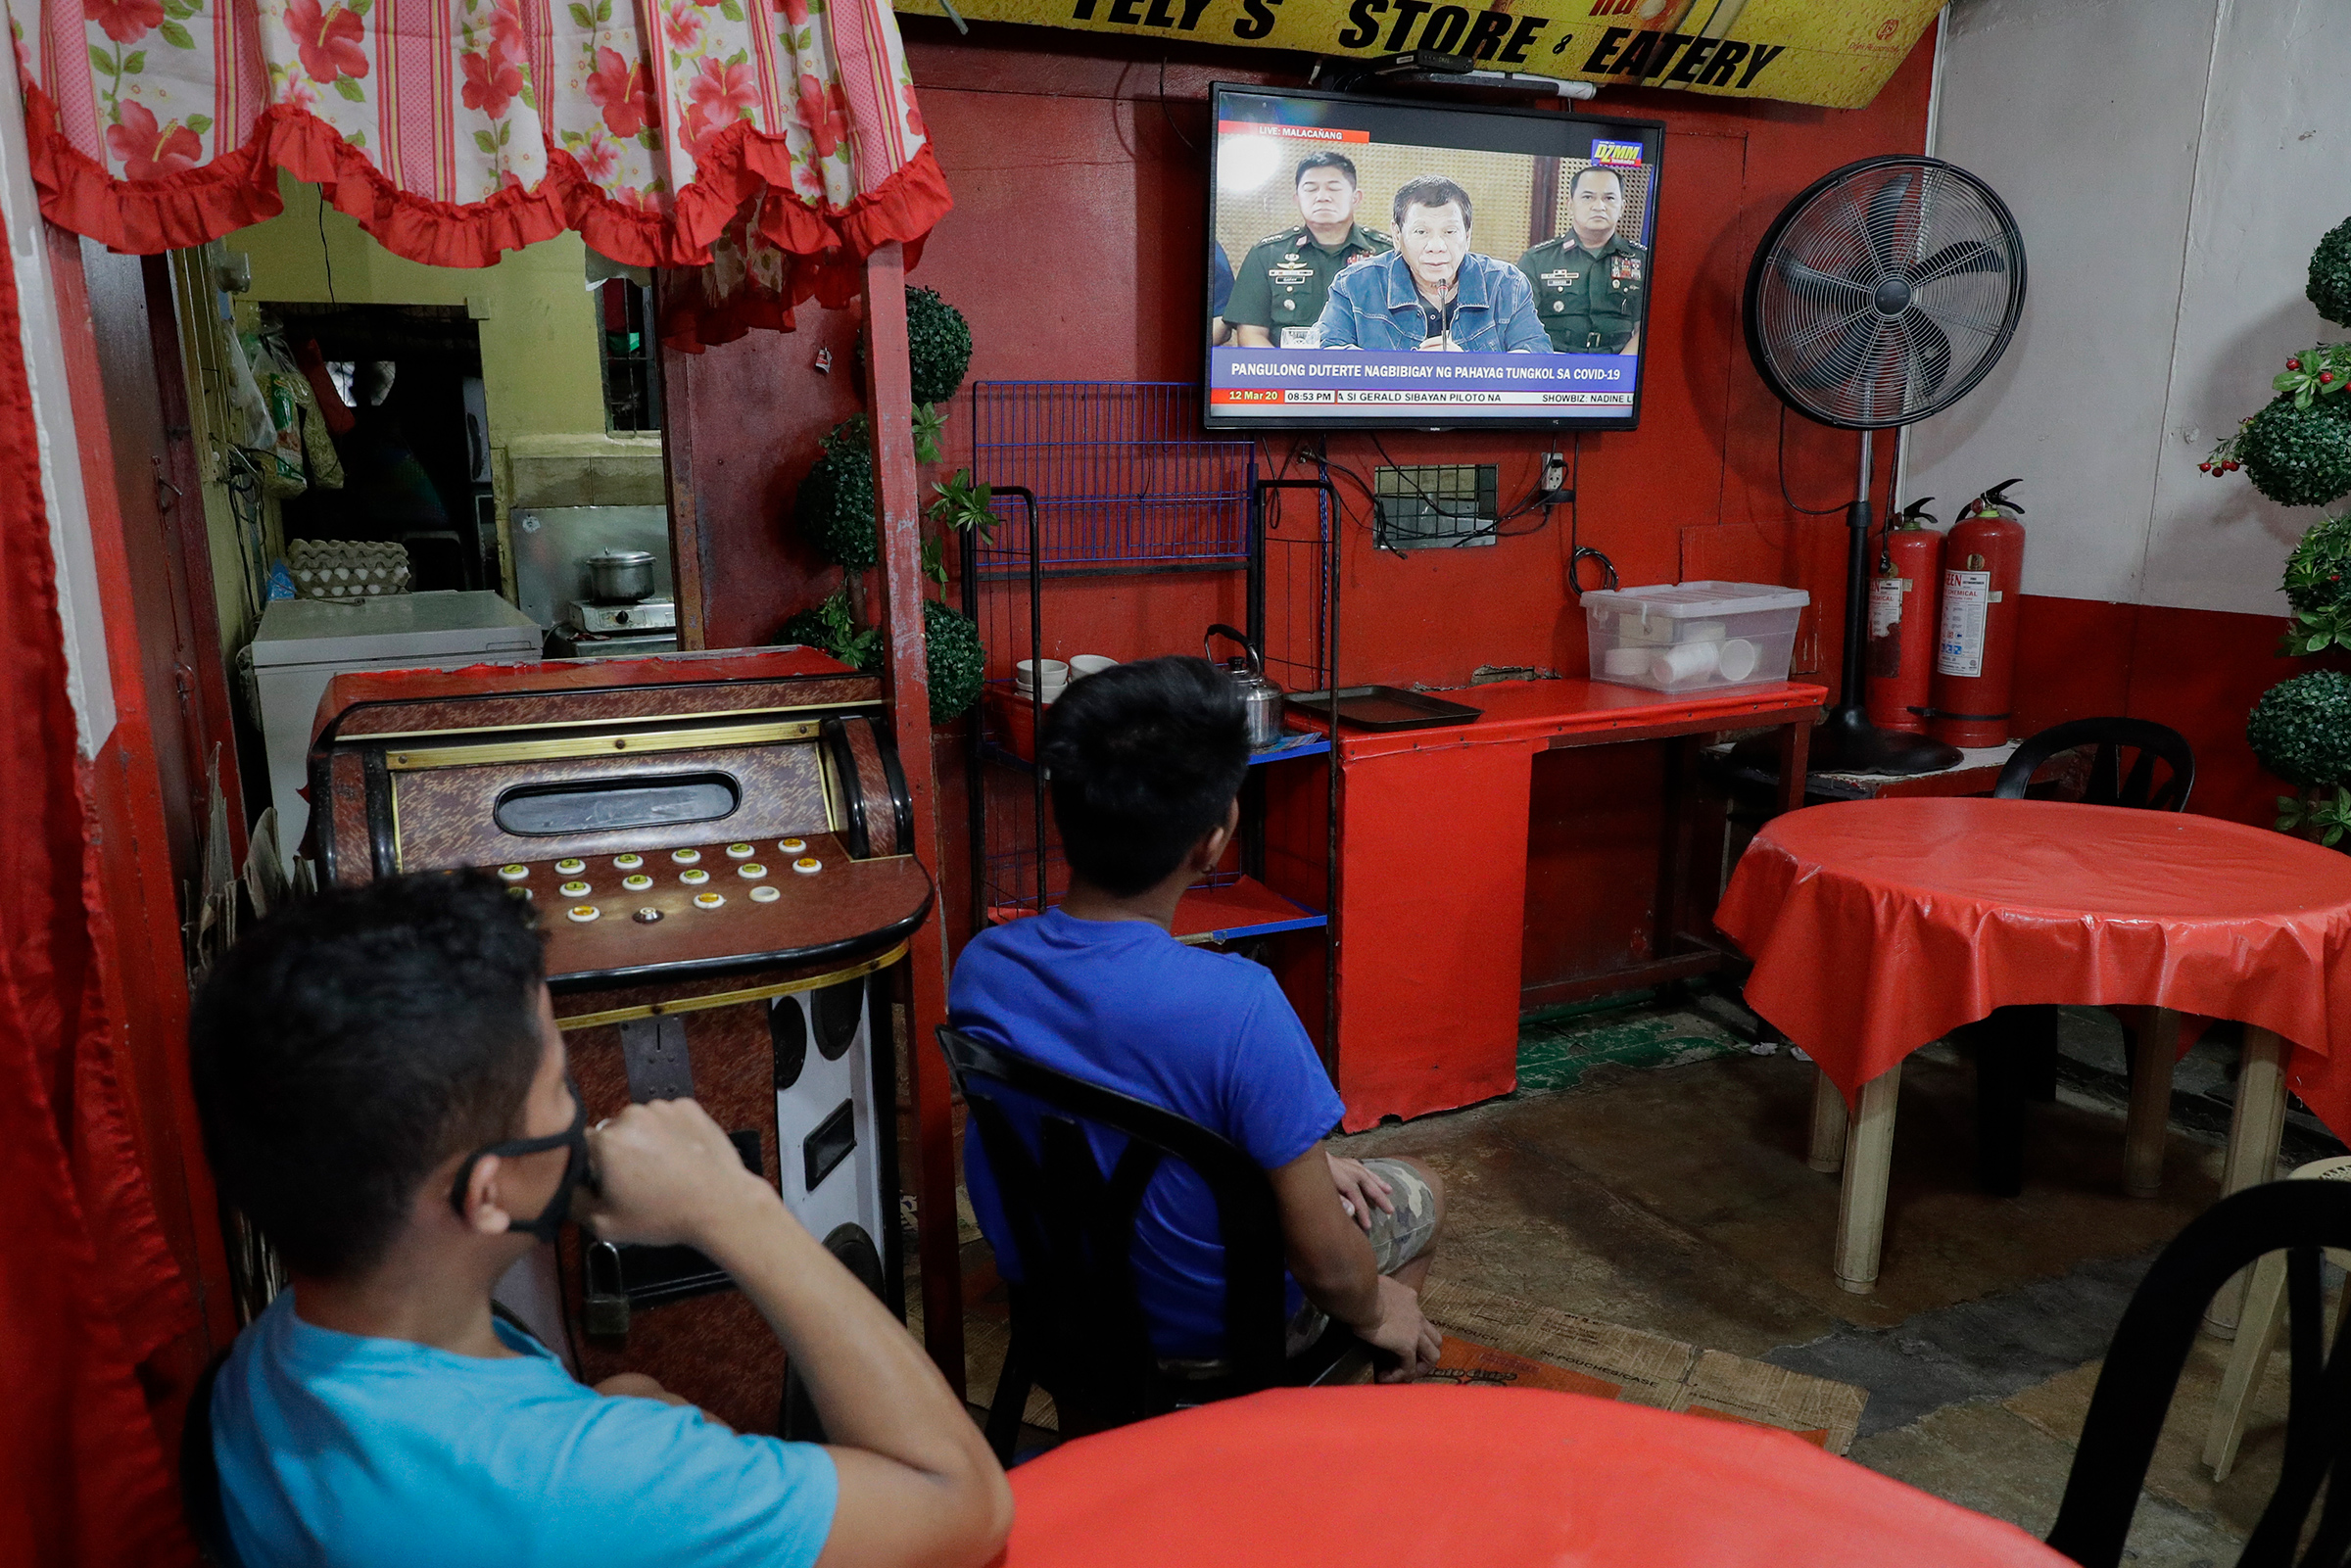 Restaurant workers watch Philippine President Rodrigo Duterte as he delivers a speech on TV about the COVID-19 virus situation in metropolitan Manila on March 12, 2020